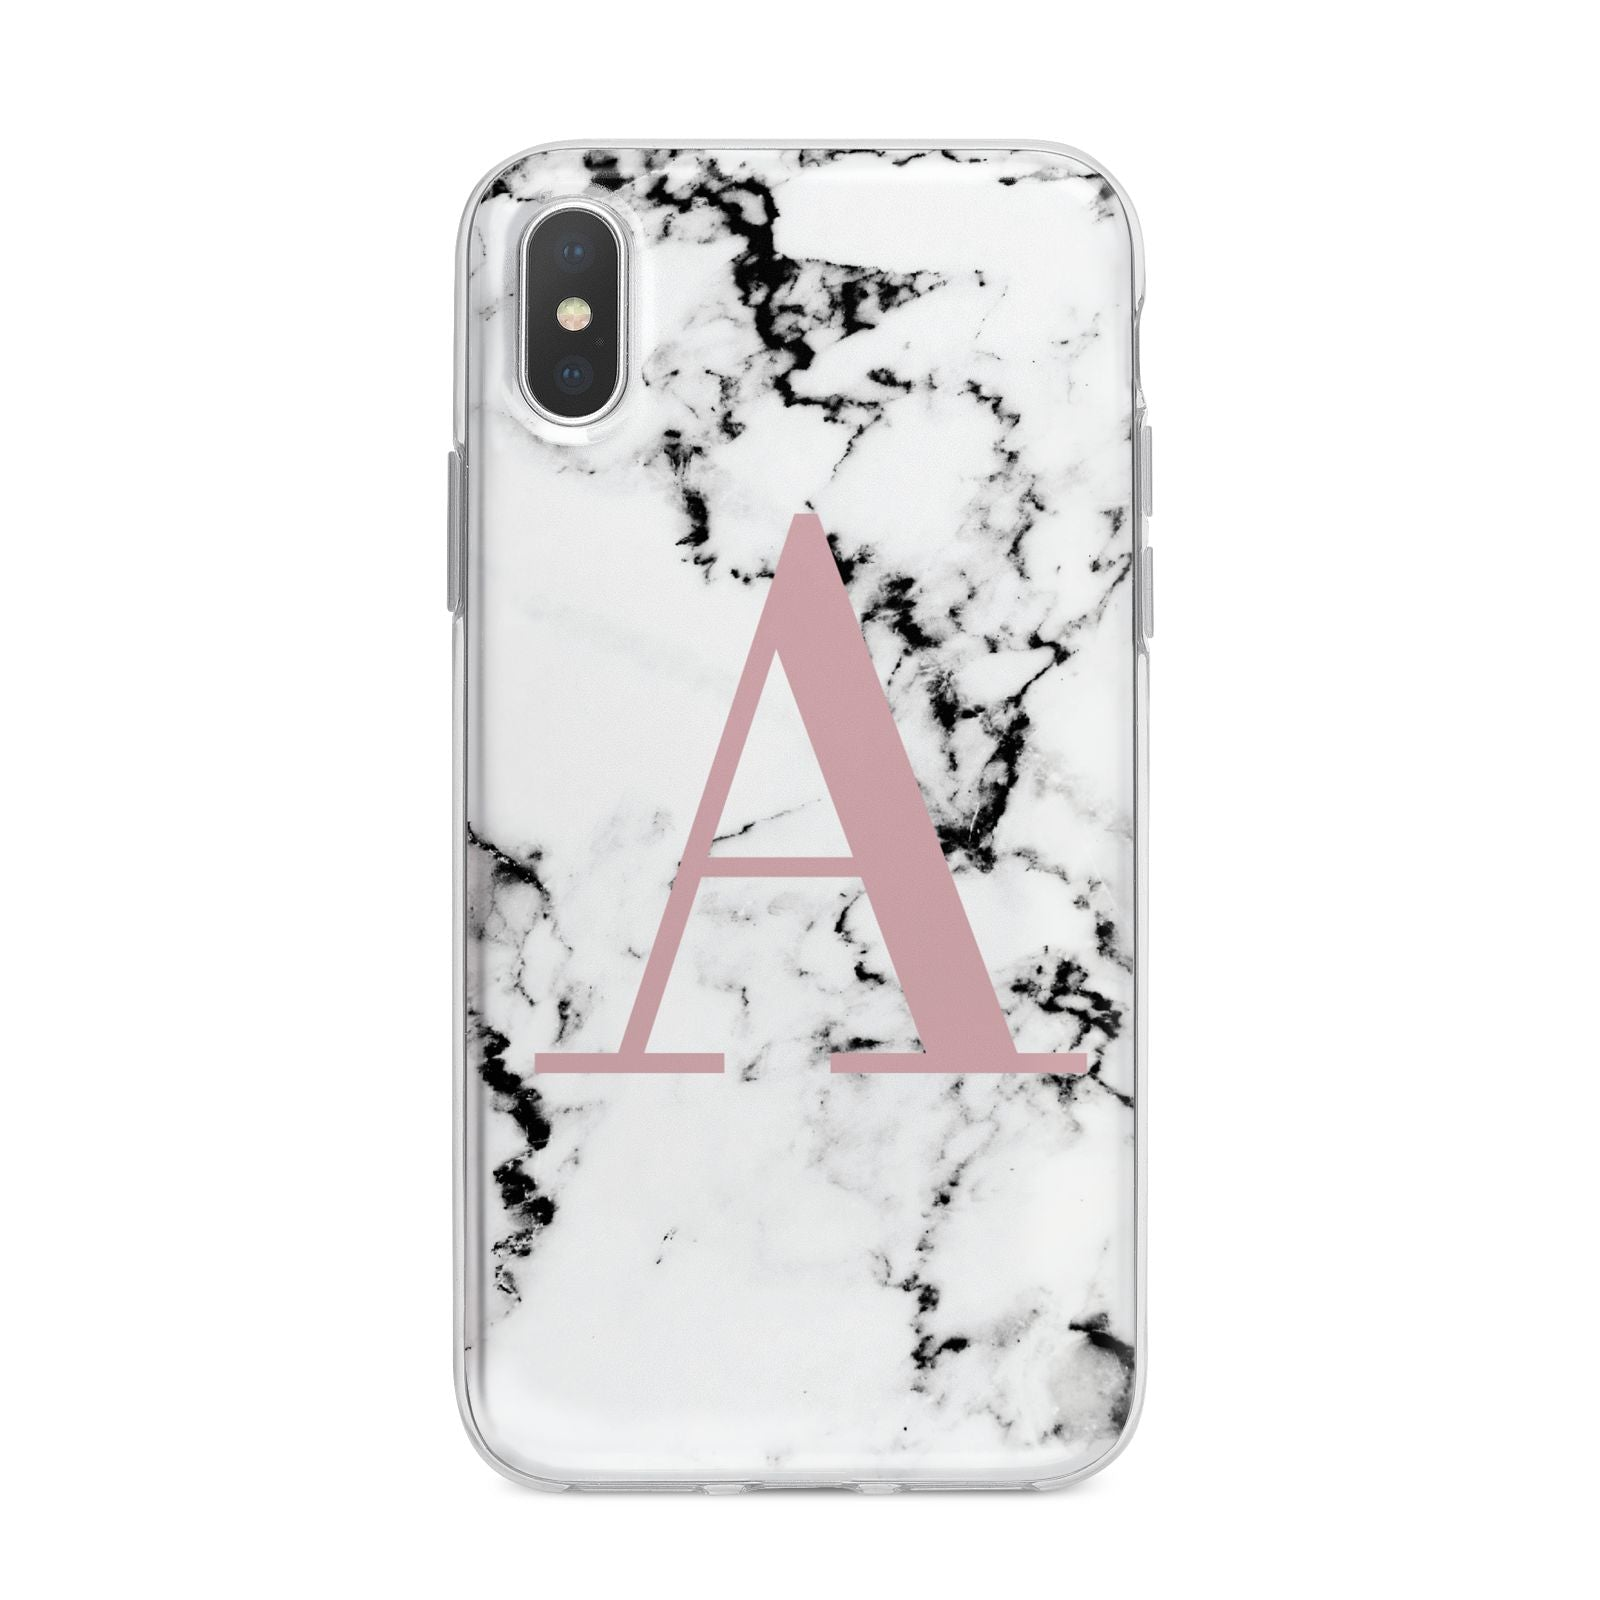 Marble Effect Pink Initial Personalised iPhone X Bumper Case on Silver iPhone Alternative Image 1